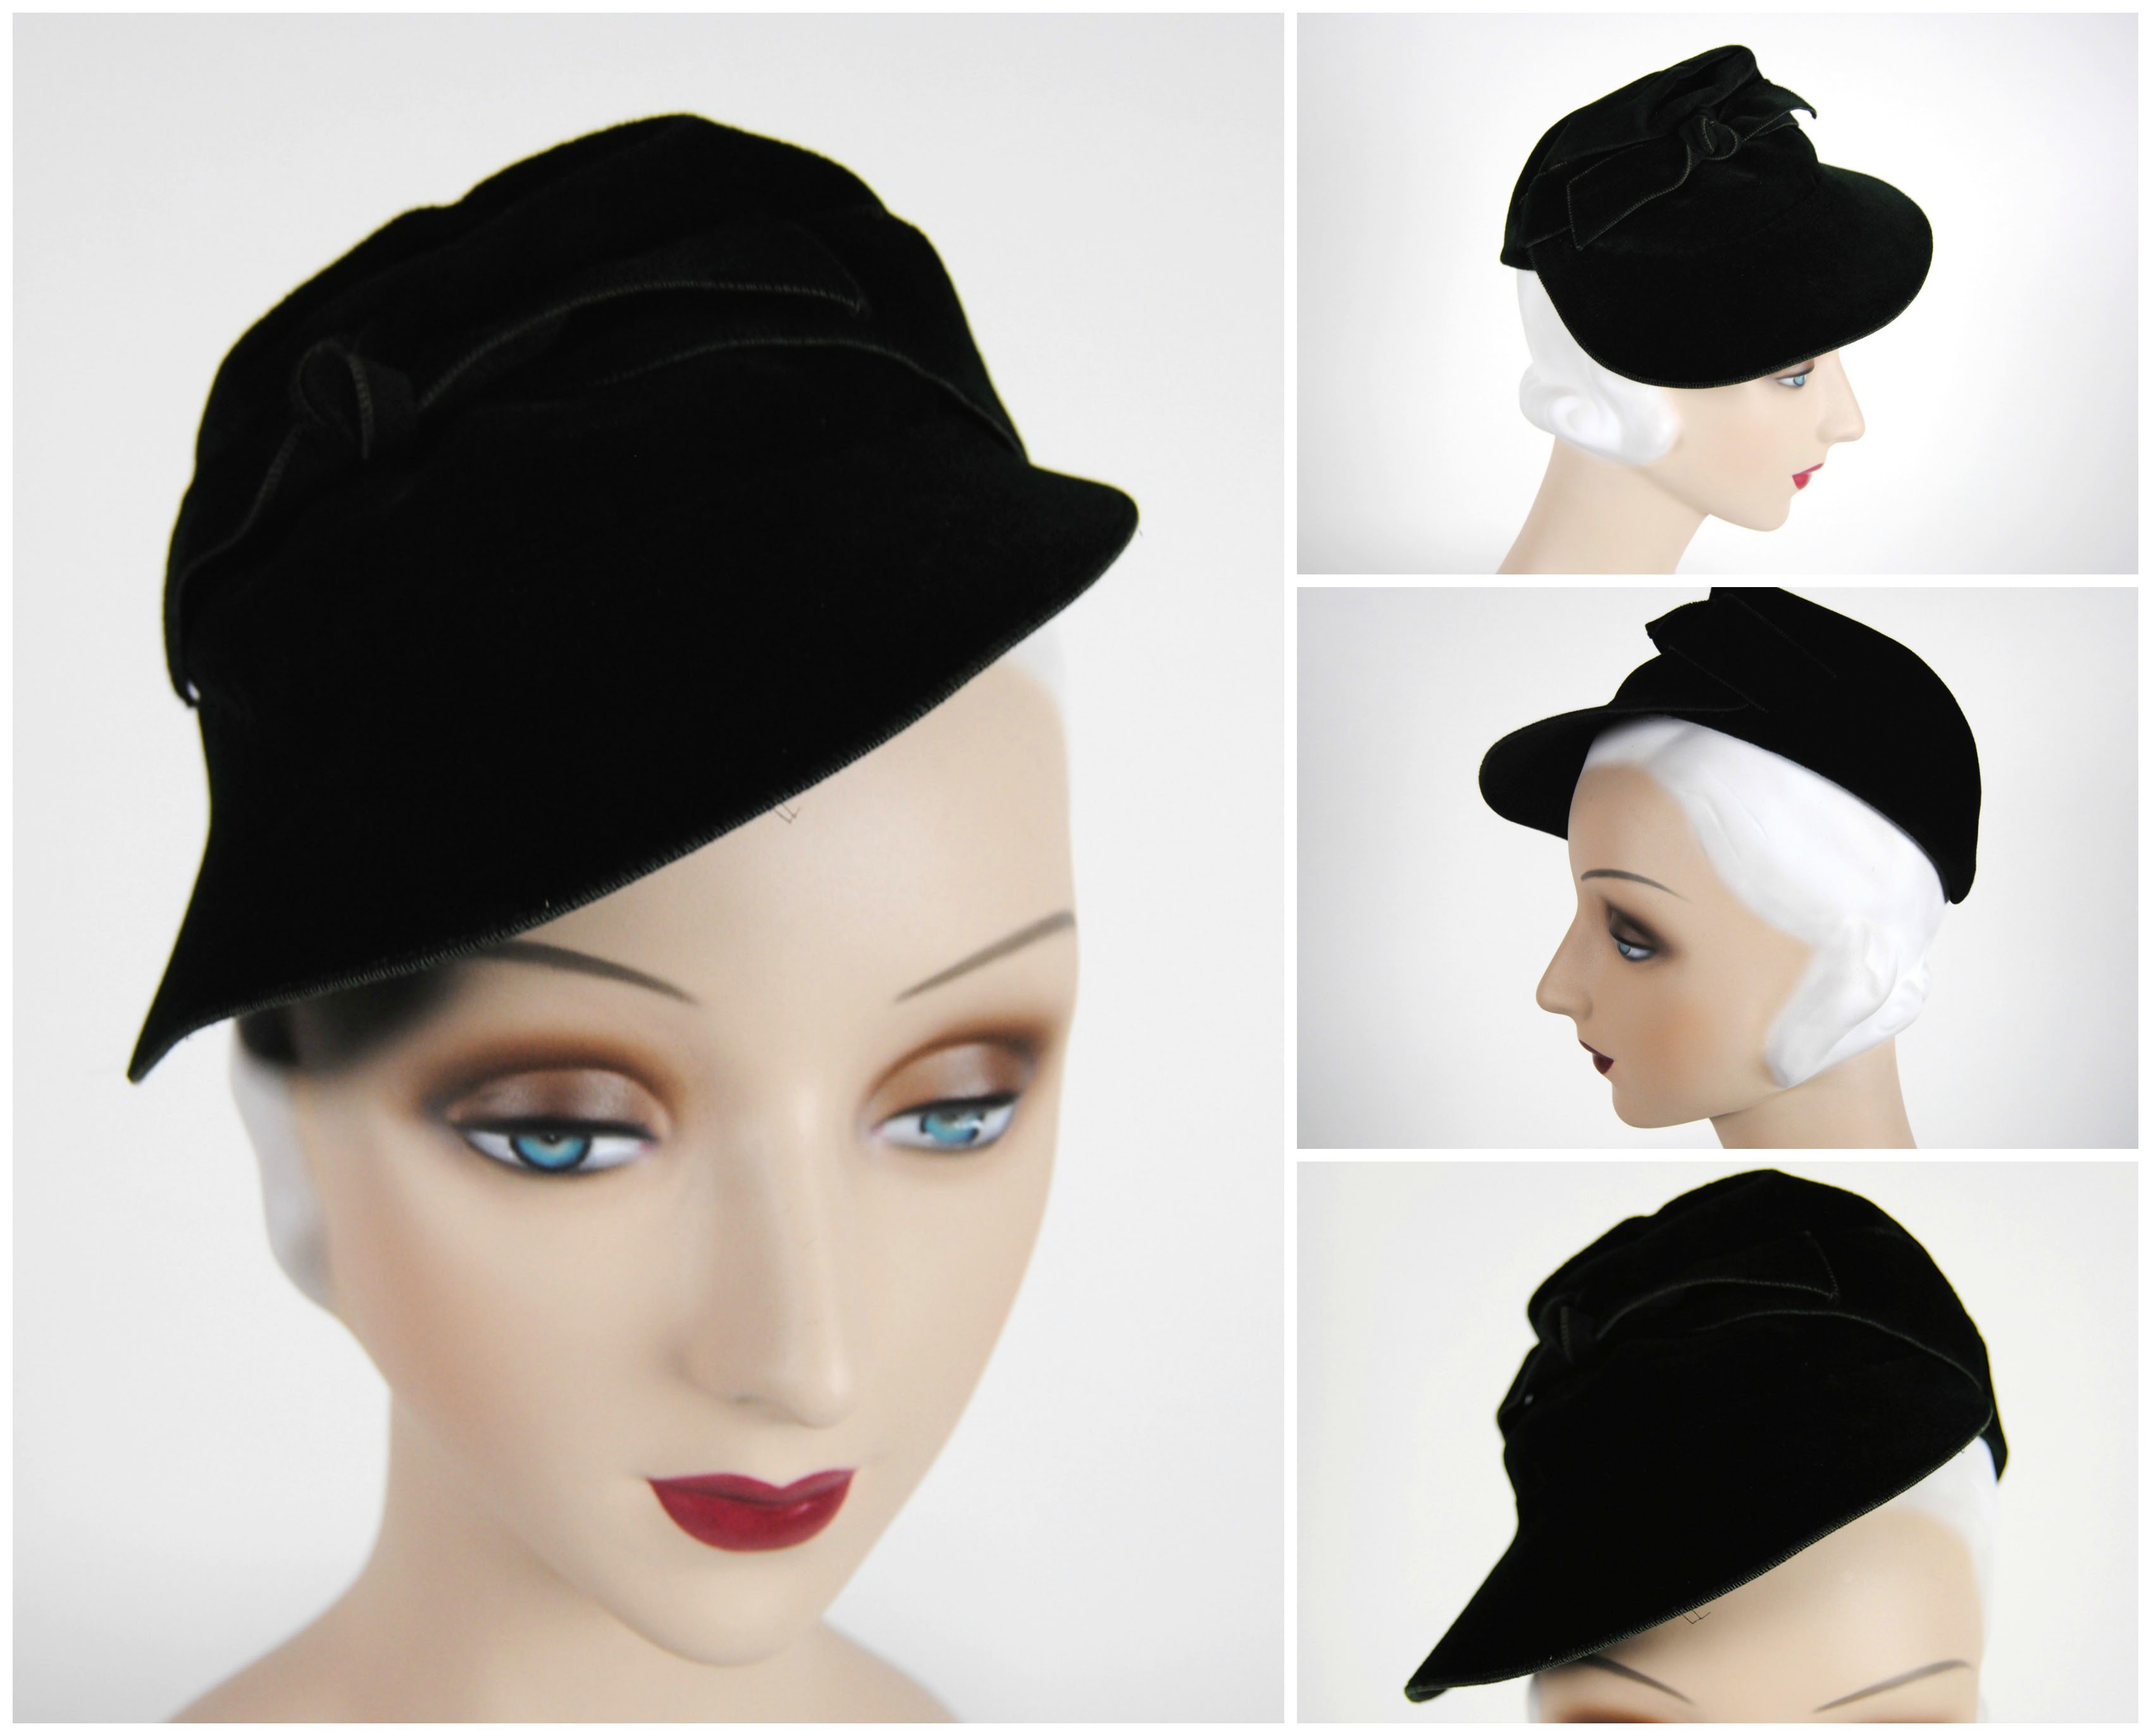 Ian Drummond Collection IDC Toronto Wardrobe Rentals Womens 30s Hat 1